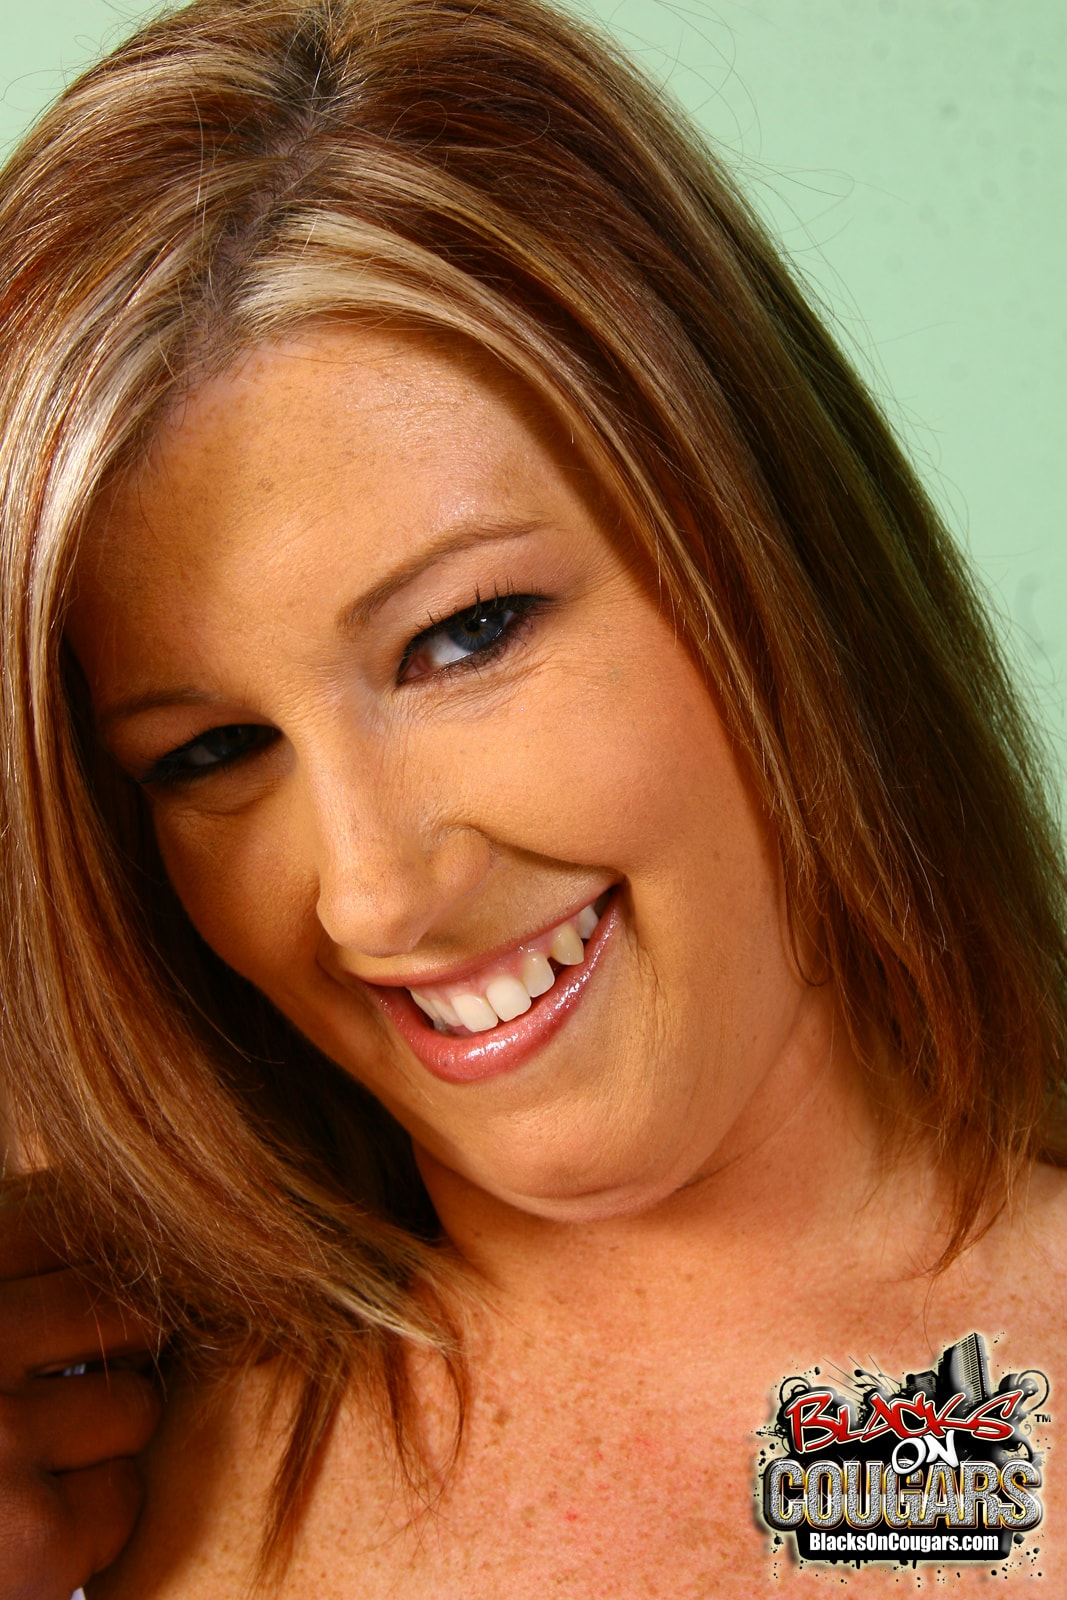 Dogfart '- Blacks On Cougars' starring Zoey Andrews (Photo 7)